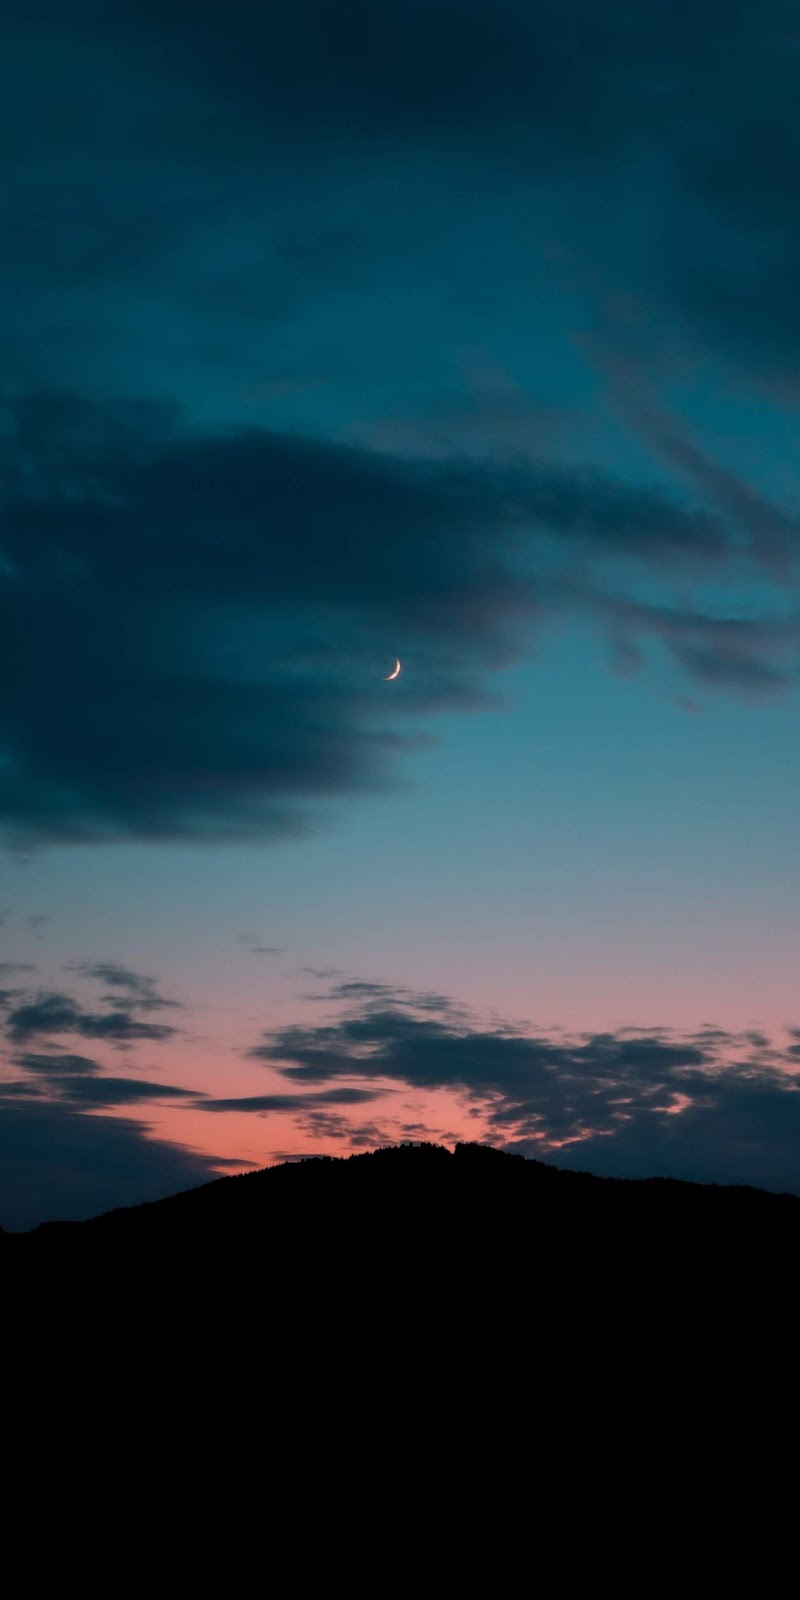 Crescent moon of the night